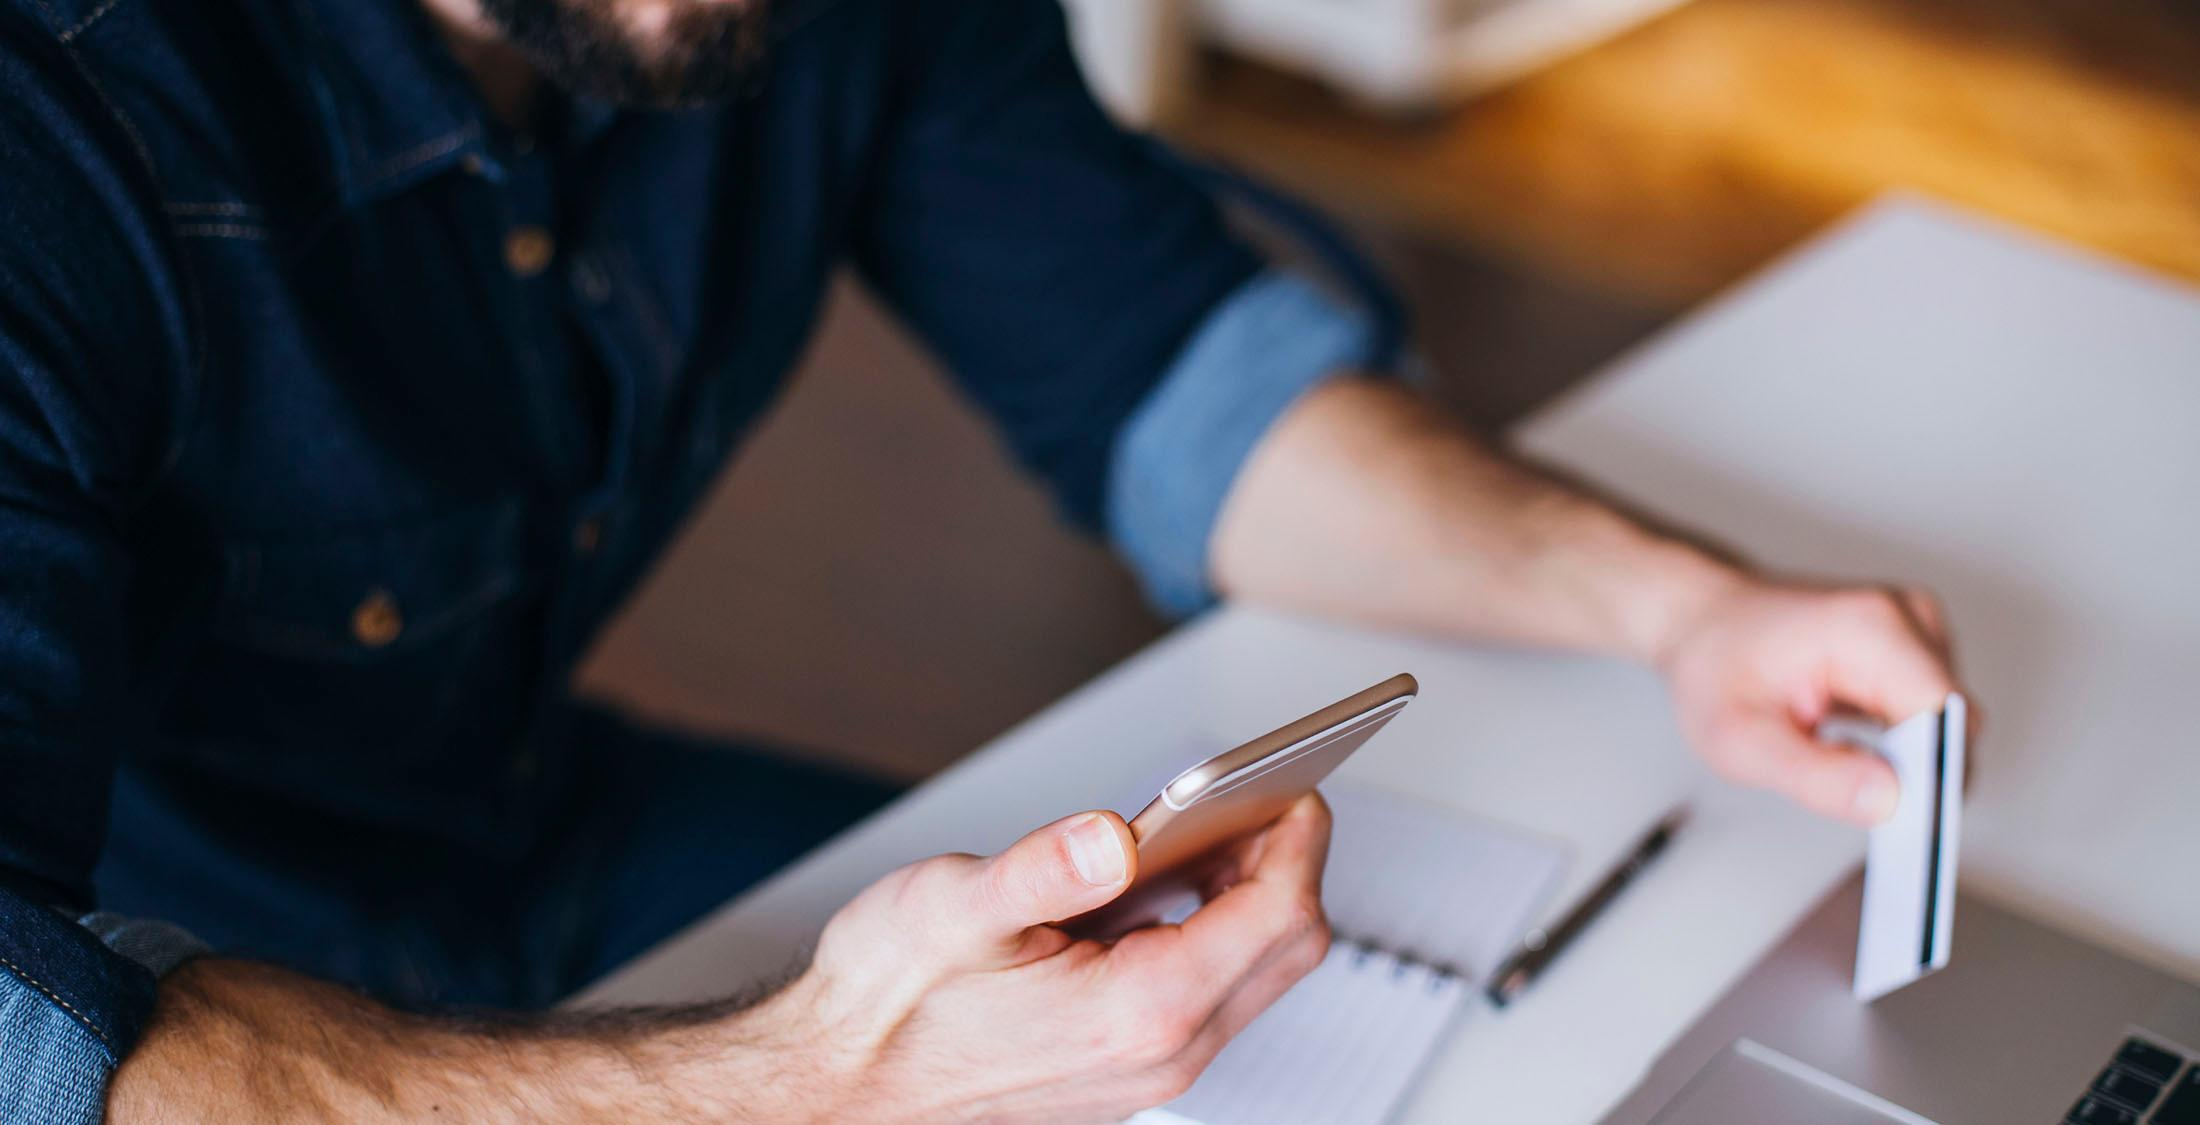 Man using mobile phone and credit card to shop online